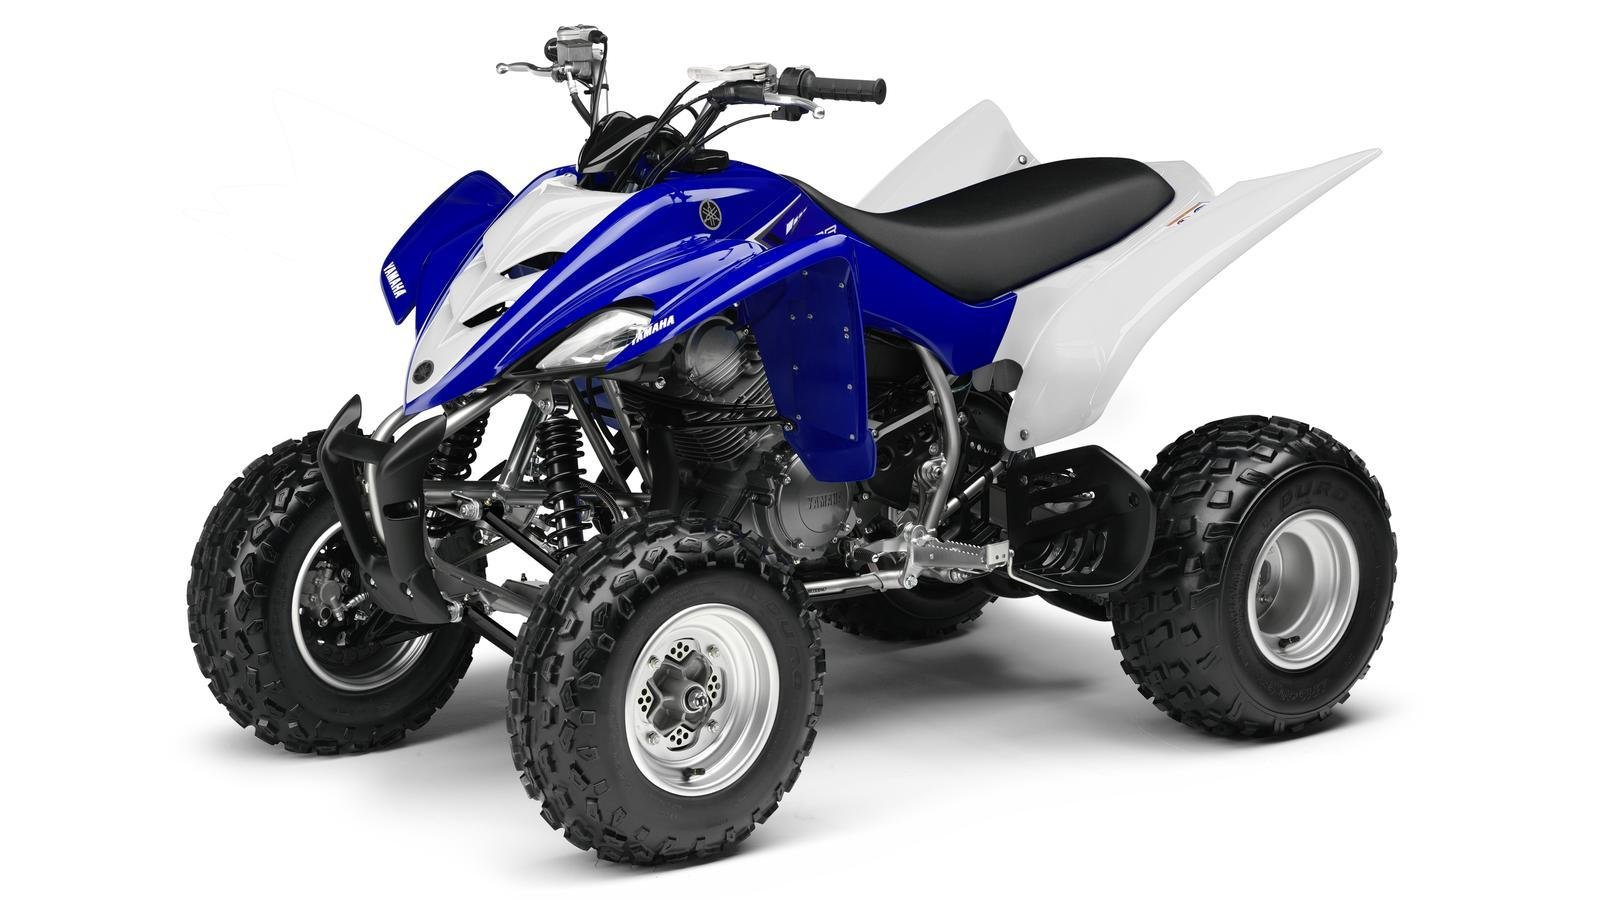 Yamaha yfm350r photo - 5